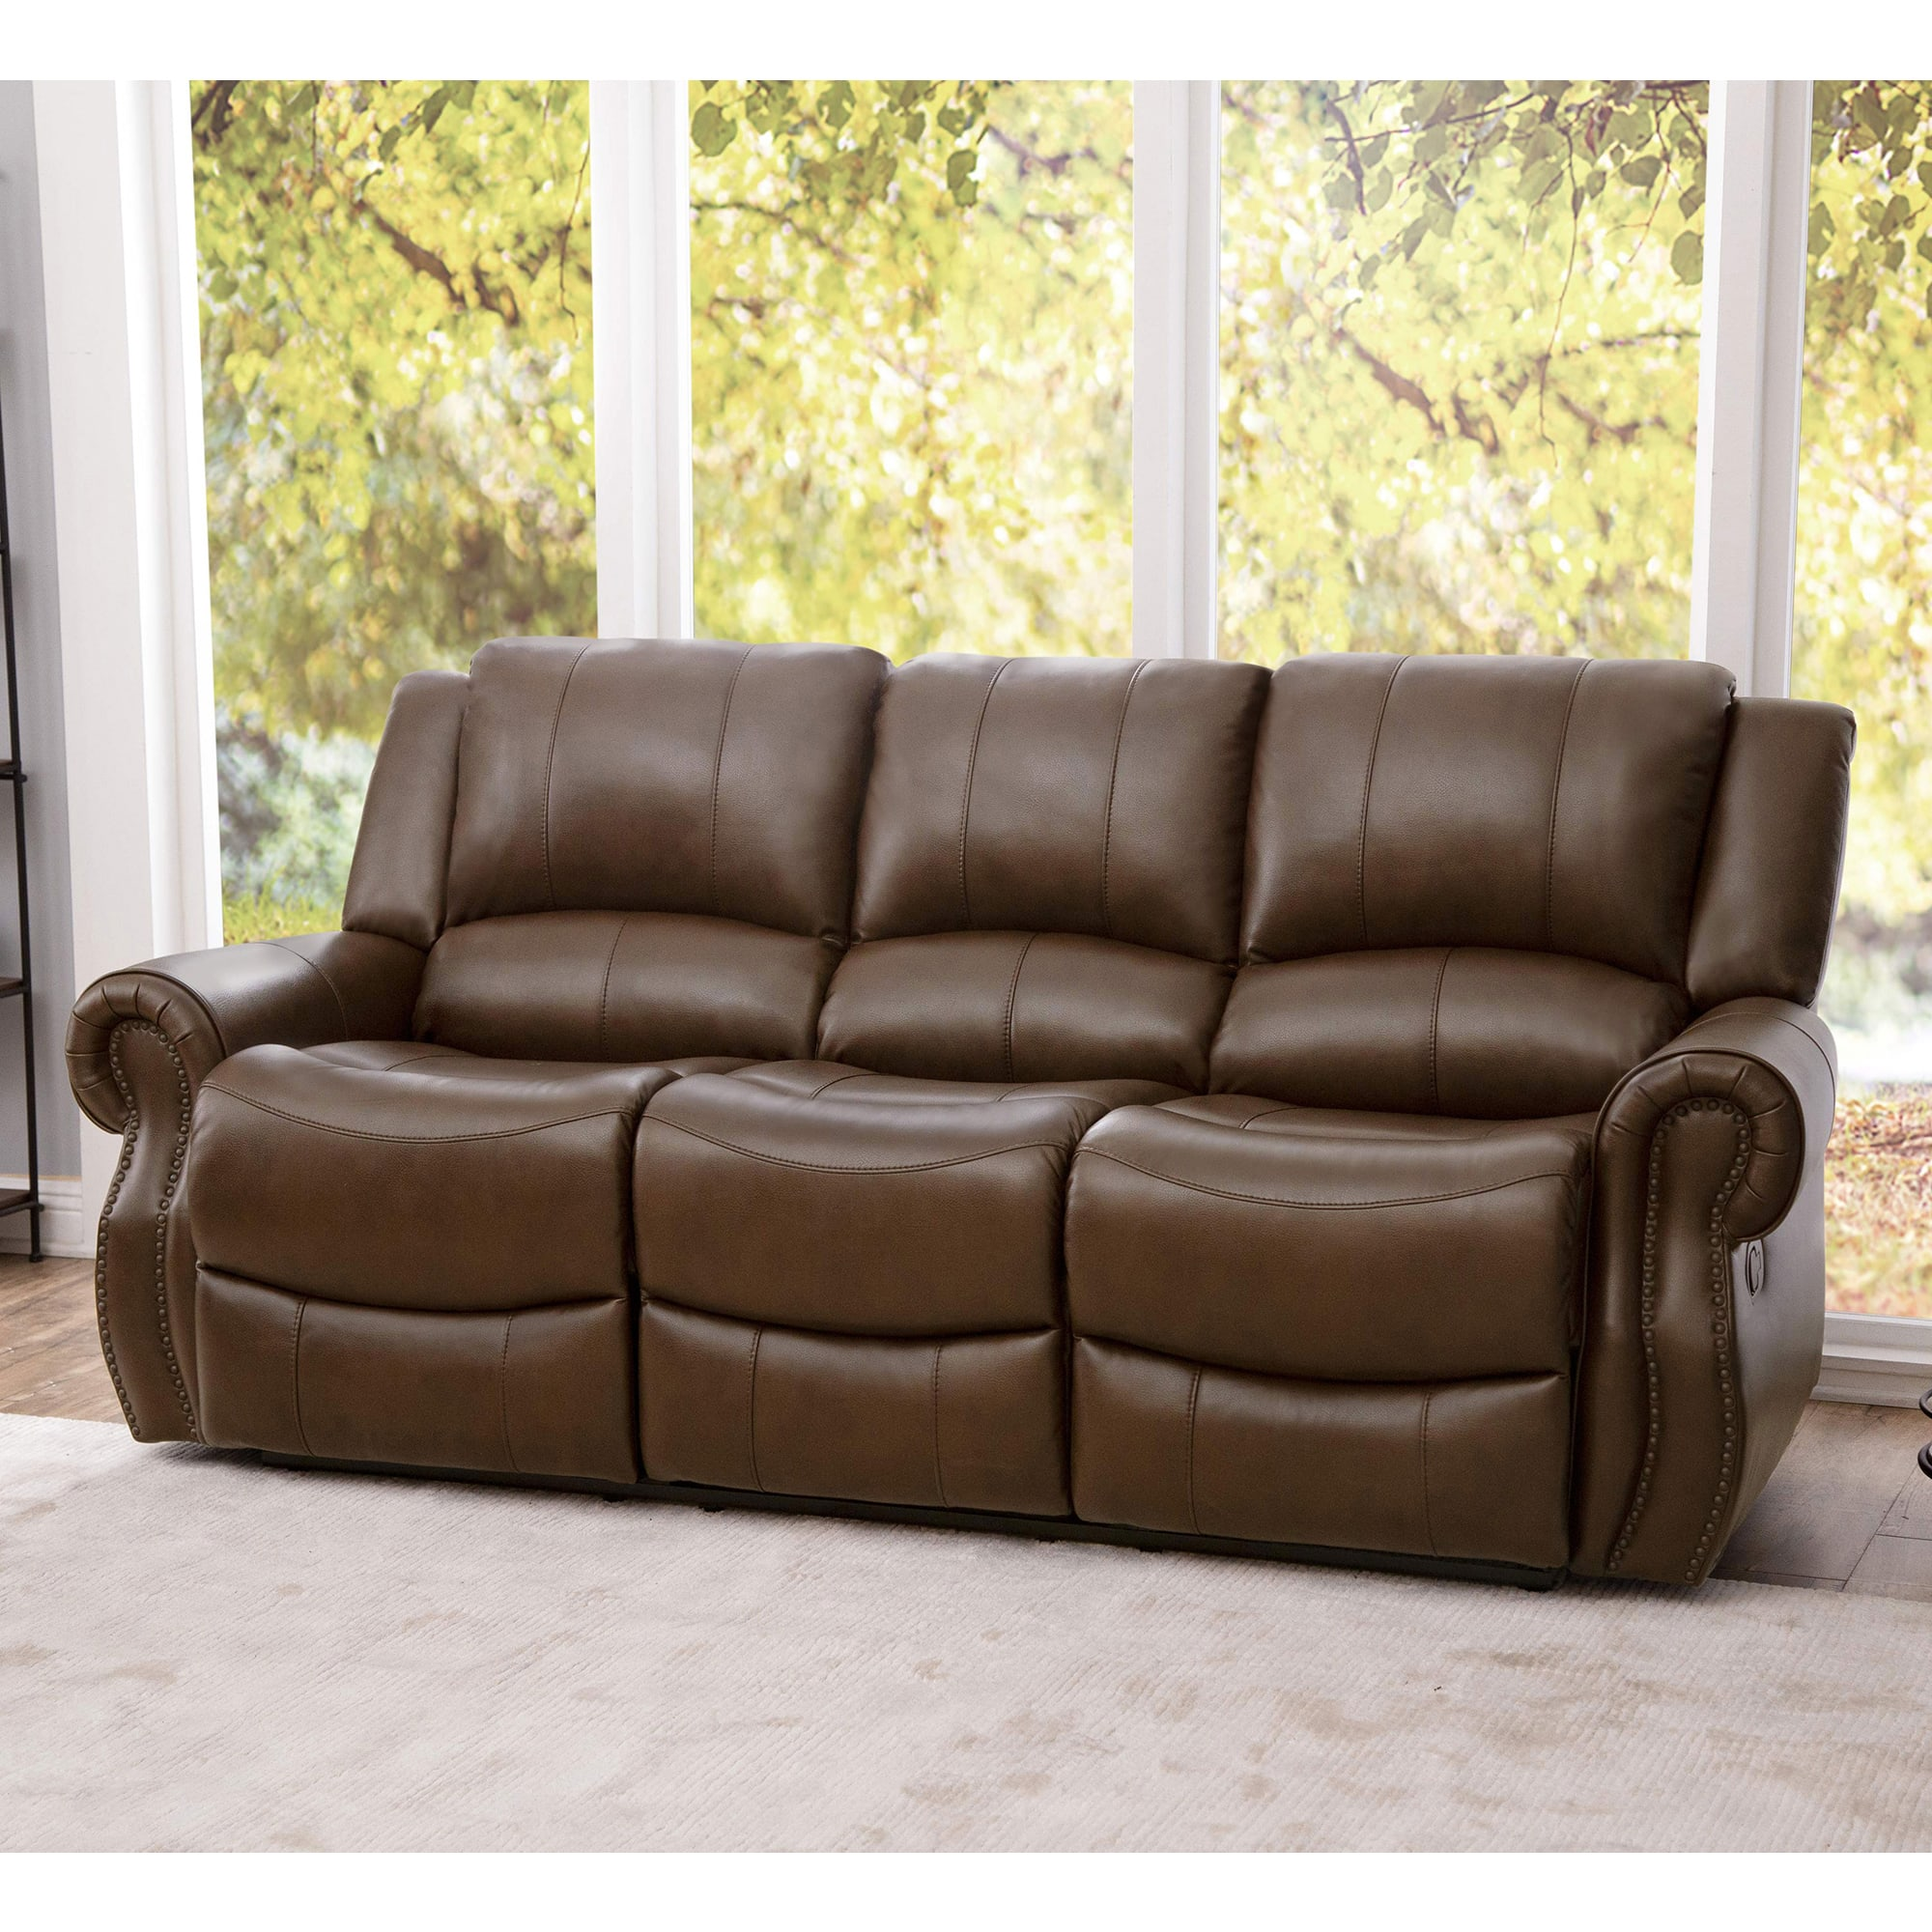 Picture of: Rent To Own Abbyson Living Calabasas Faux Leather Sofa At Aaron S Today